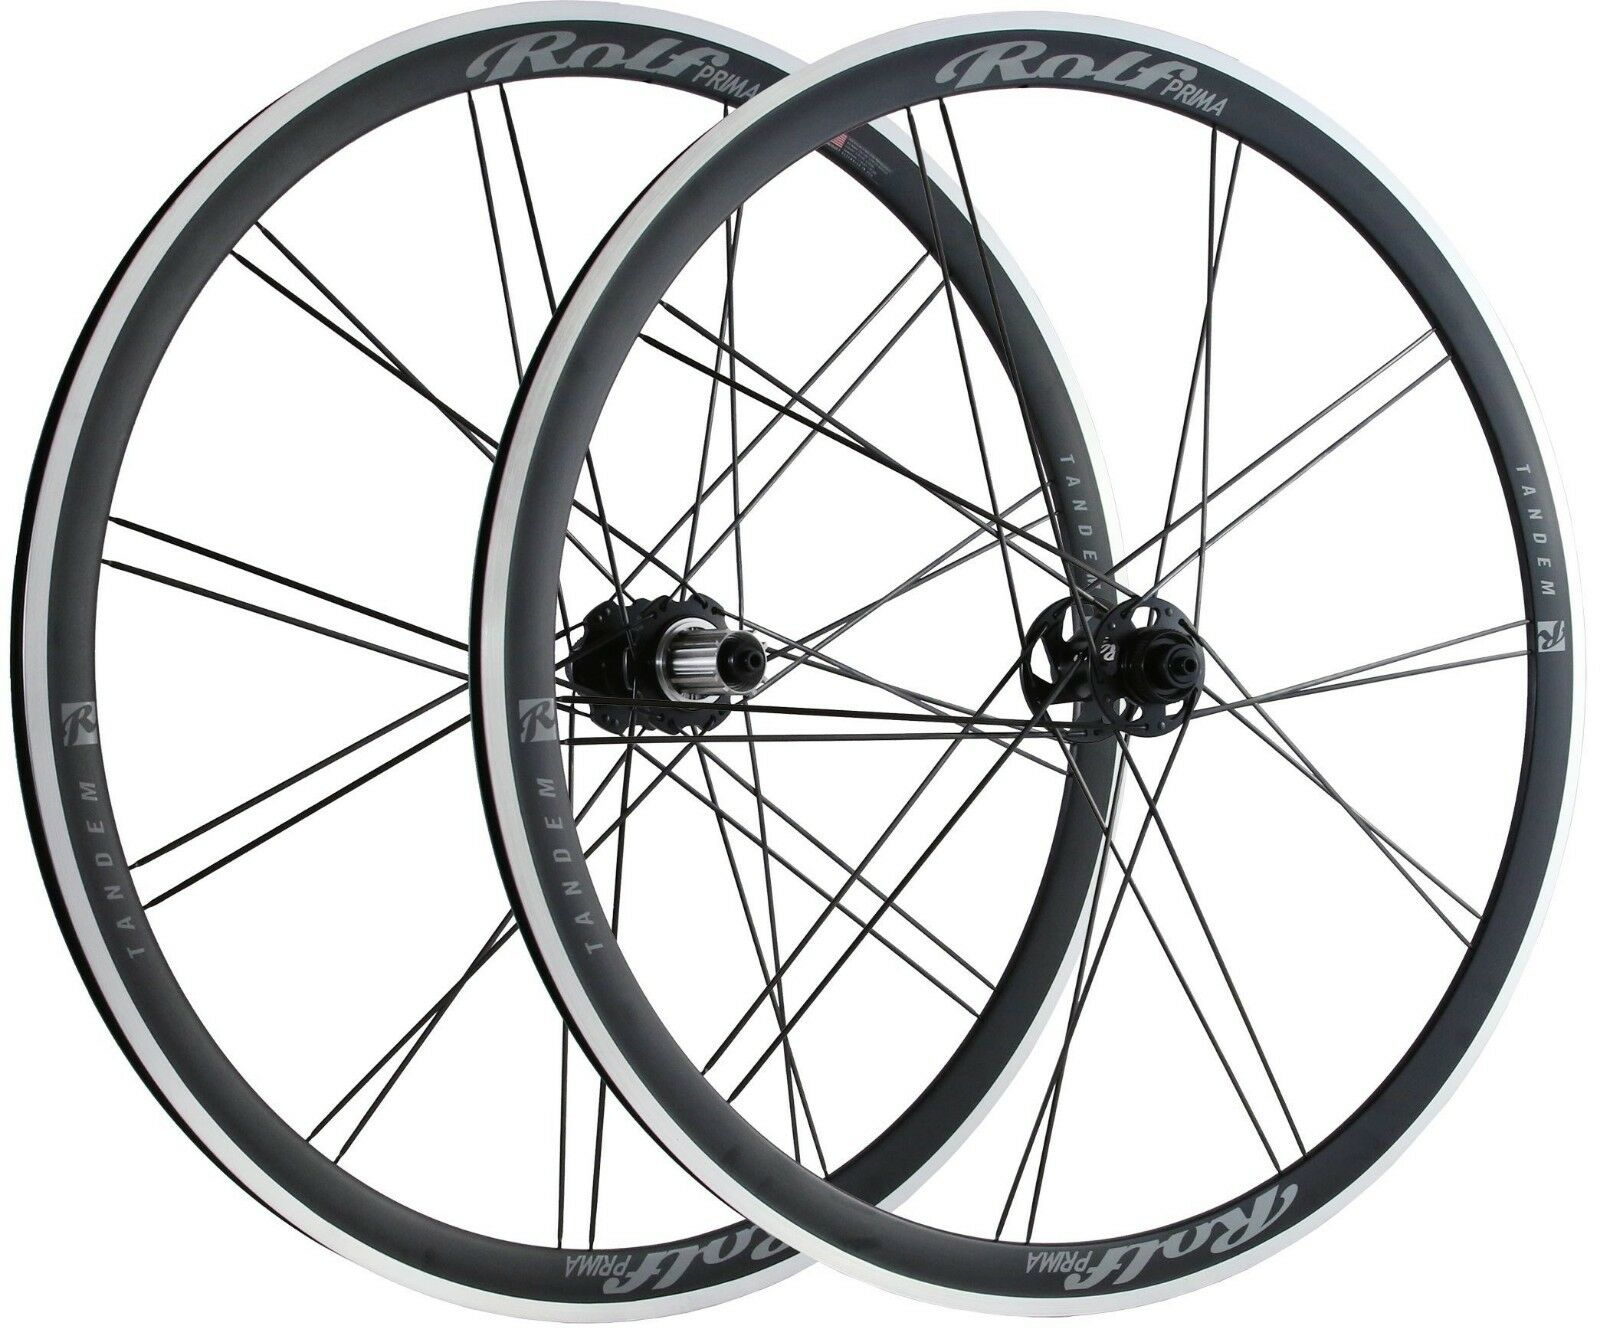 Rolf Prima Tandem Wheelset -  Alloy,145 spaced, NEW Current Model      amazing colorways